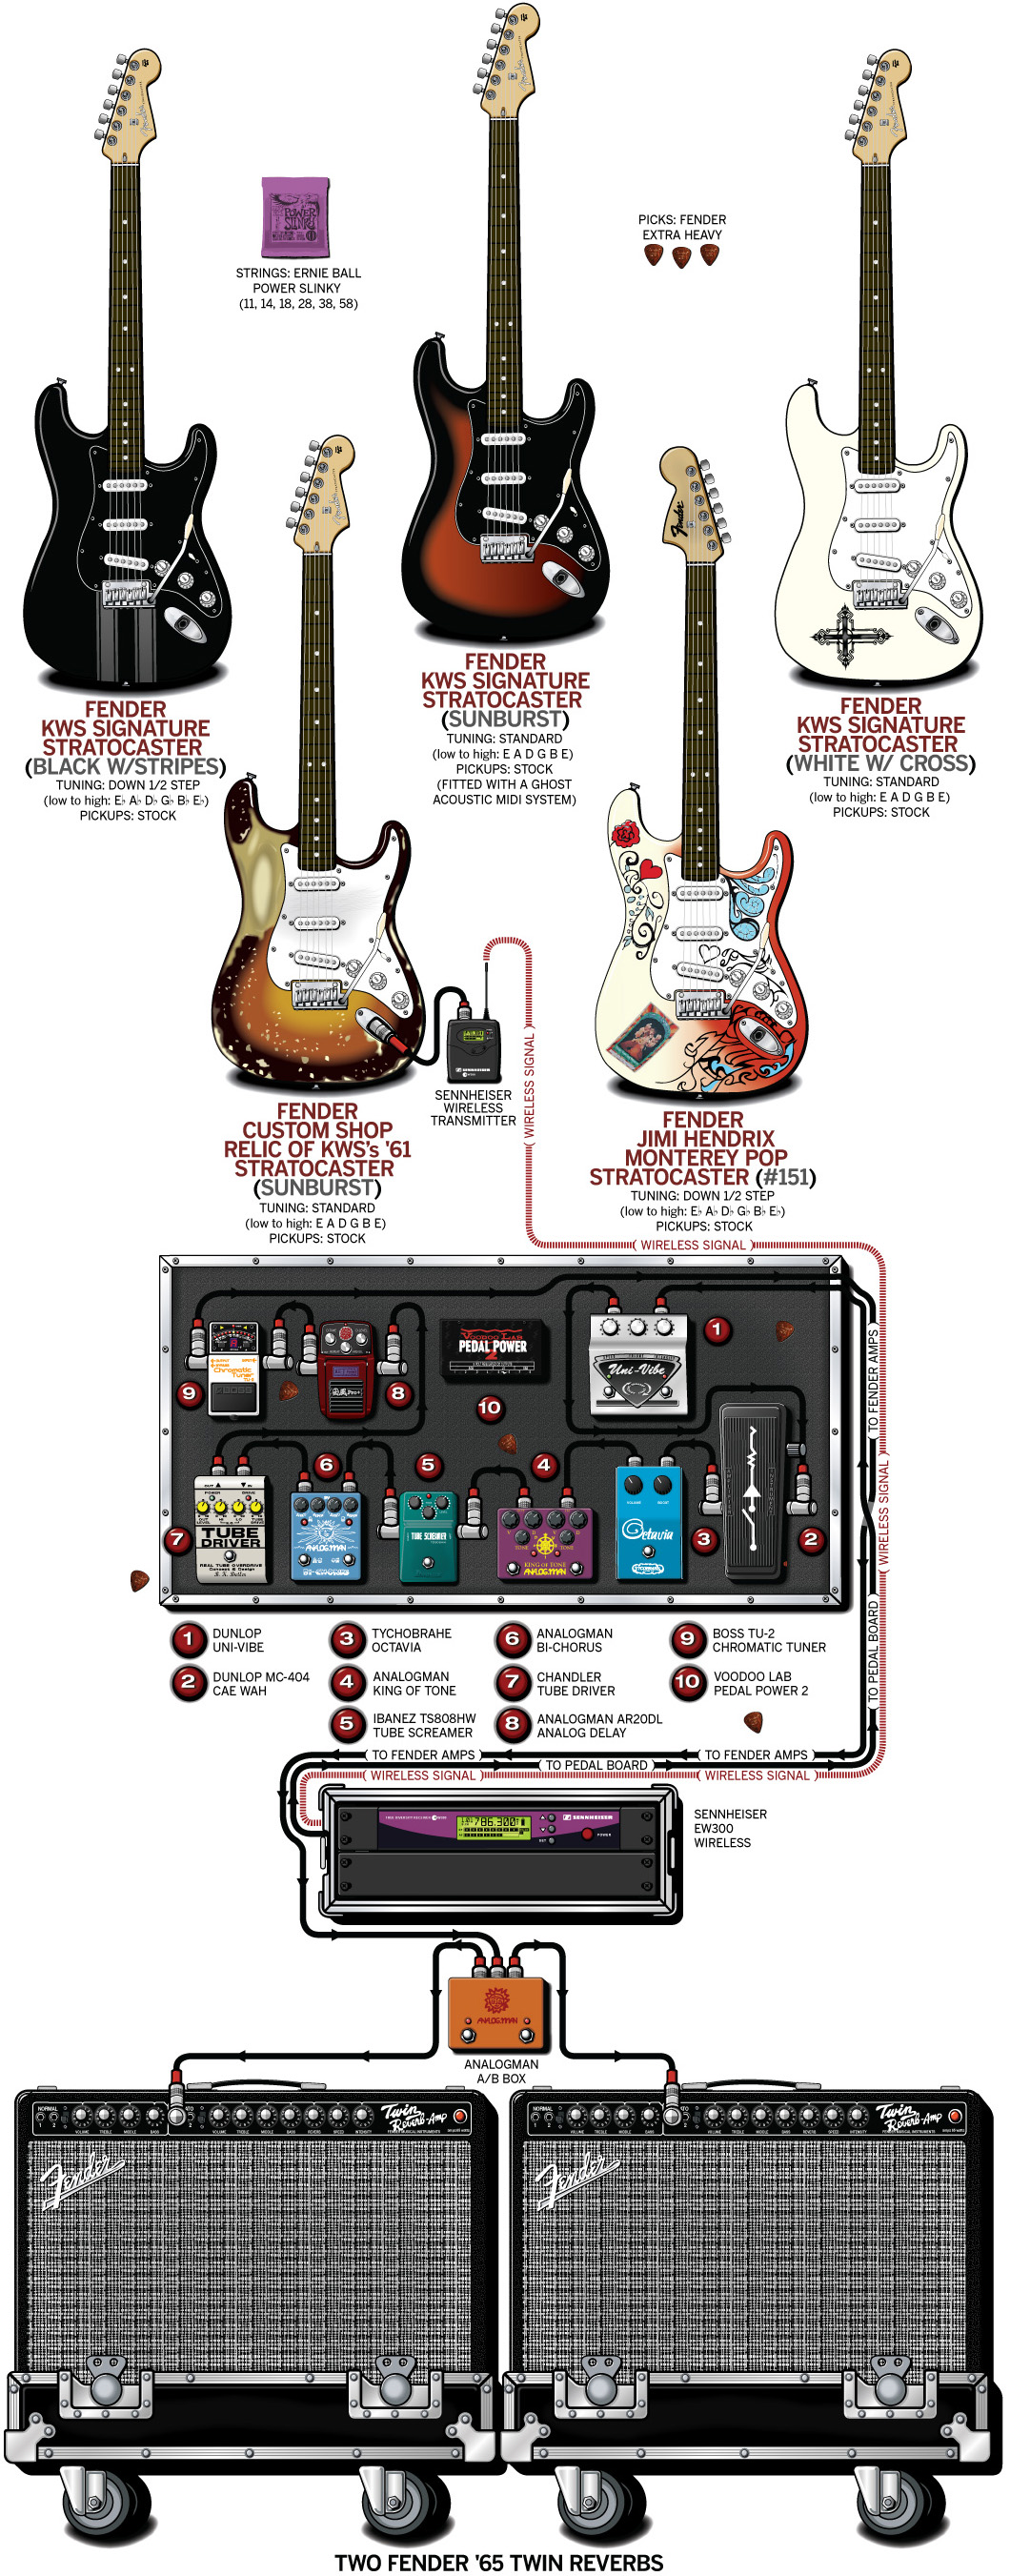 Kenny Wayne Shepherd Guitar Gear & Rig – 2010